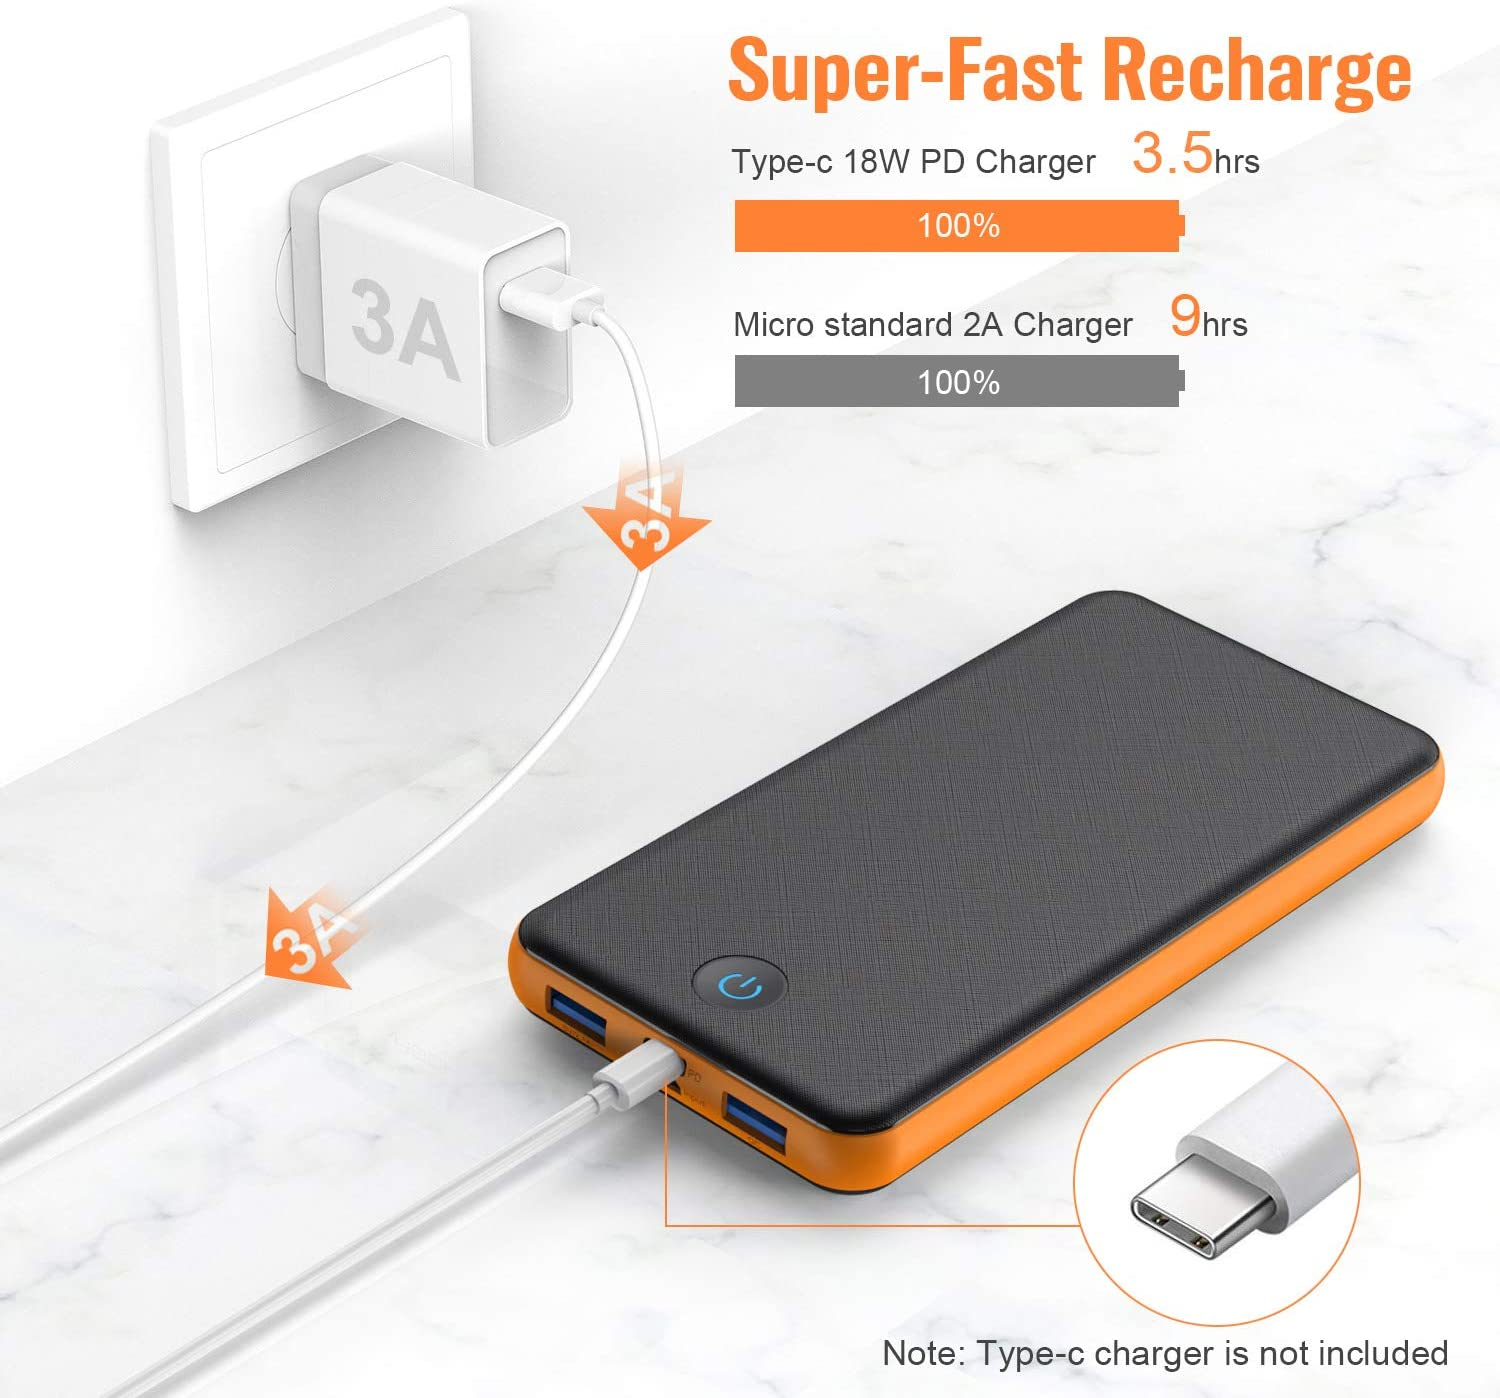 Tablet /& etc Huge Capacity External Battery Pack with Colorful LED Indicator Power Bank 26800mAh Portable Charger 18W PD /& QC 3.0 Quick Charging Type-C Input//Output 2 Inputs and 3 Outputs Cell Phone Charger for iPhone,Samsung,Android Phone